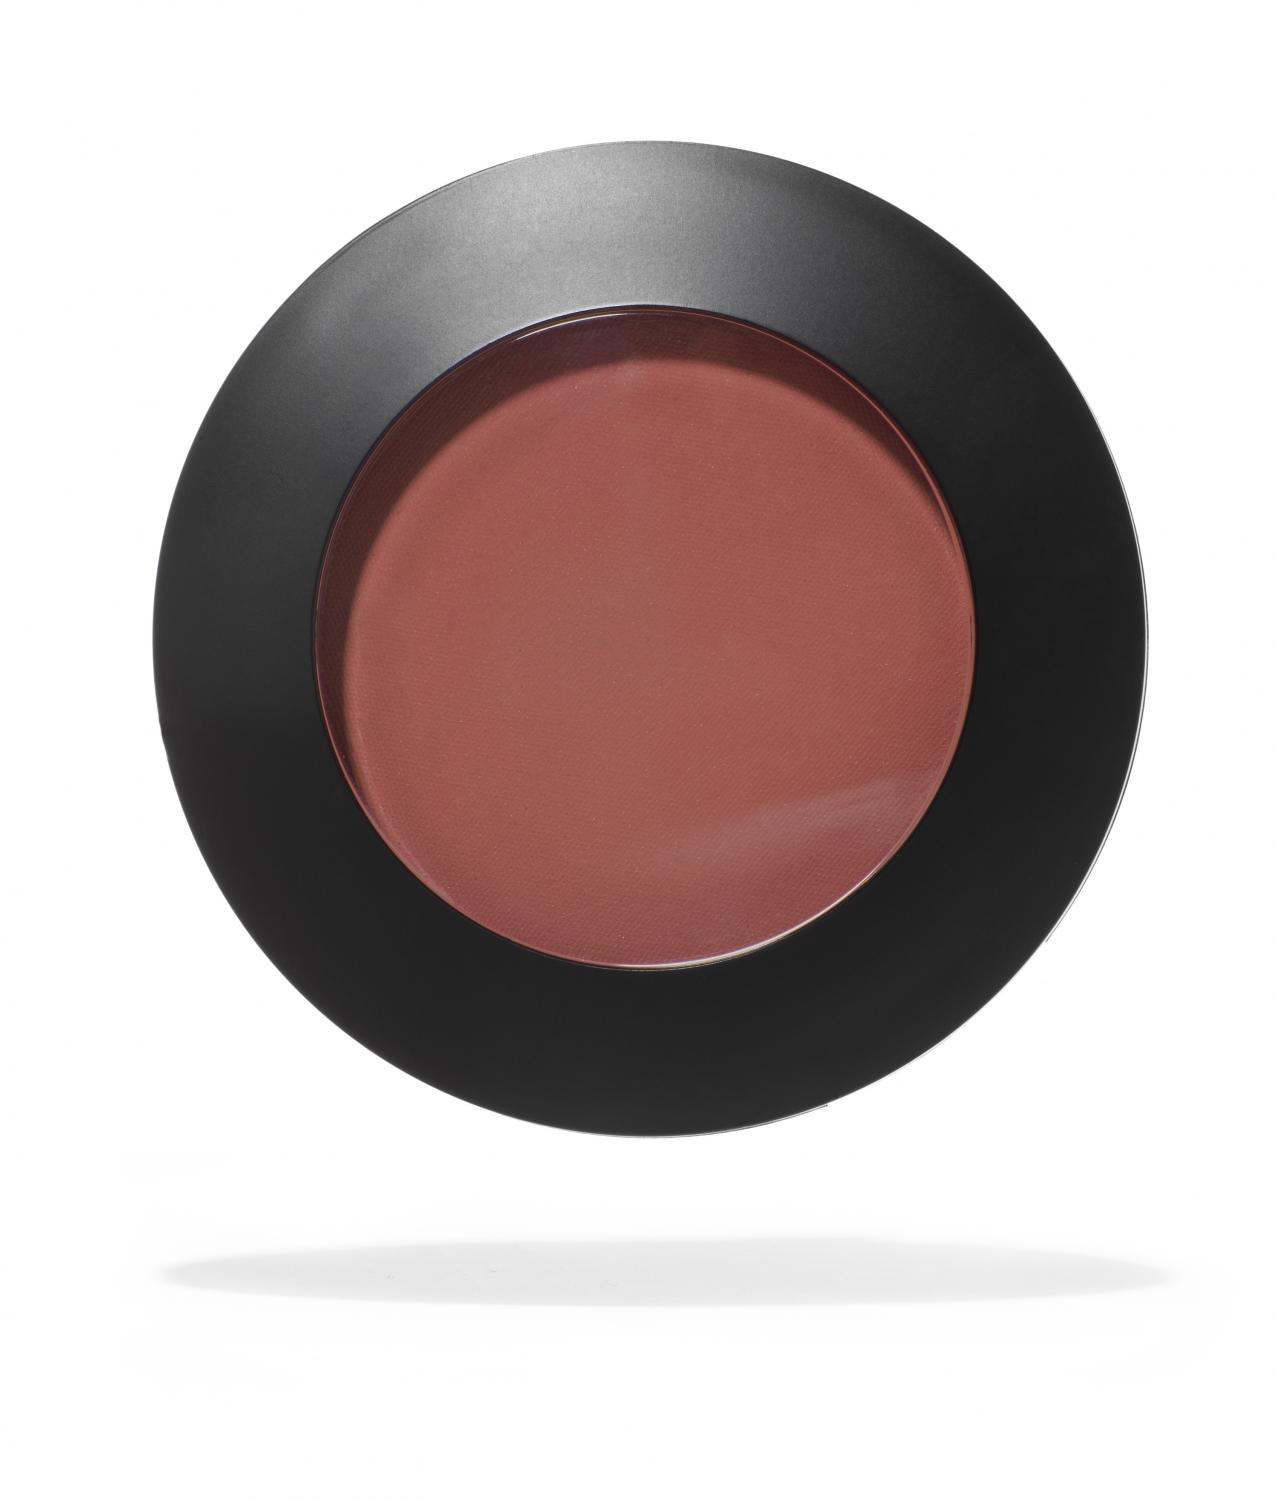 CLAR - MICRONIZED POWDER BLUSH